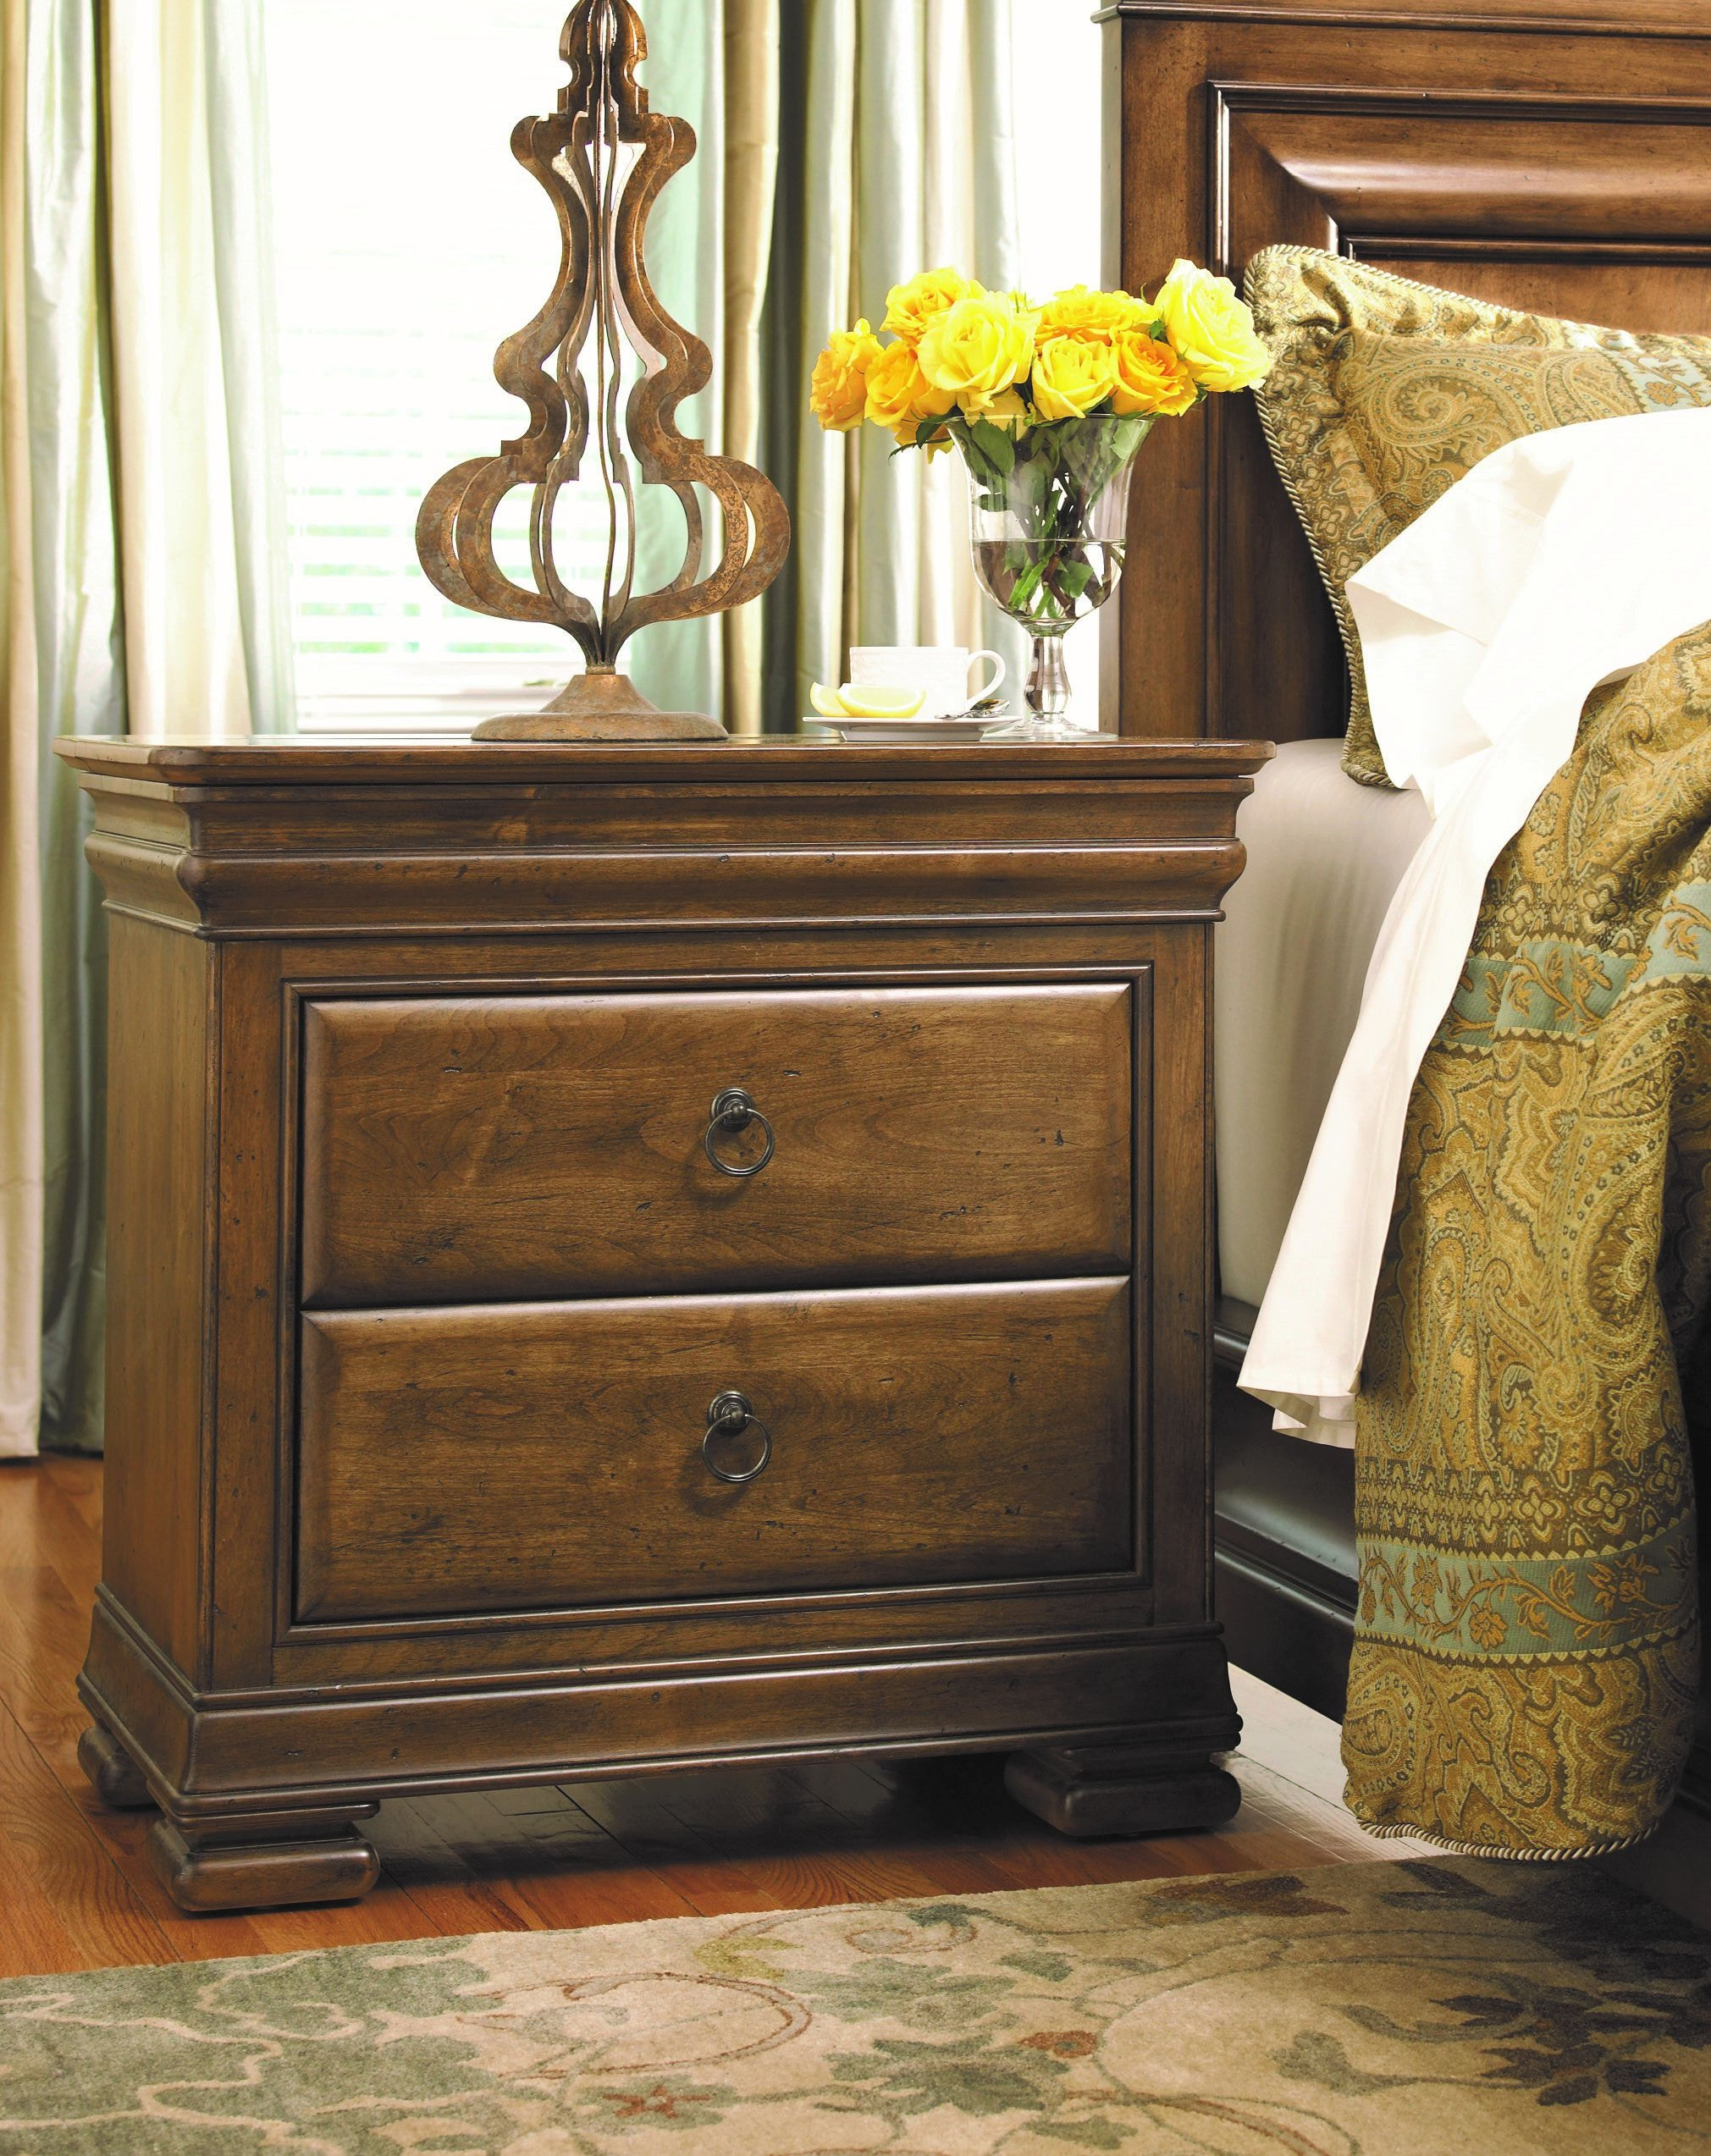 071355. Nightstand · Carol House Discount Price $527.00